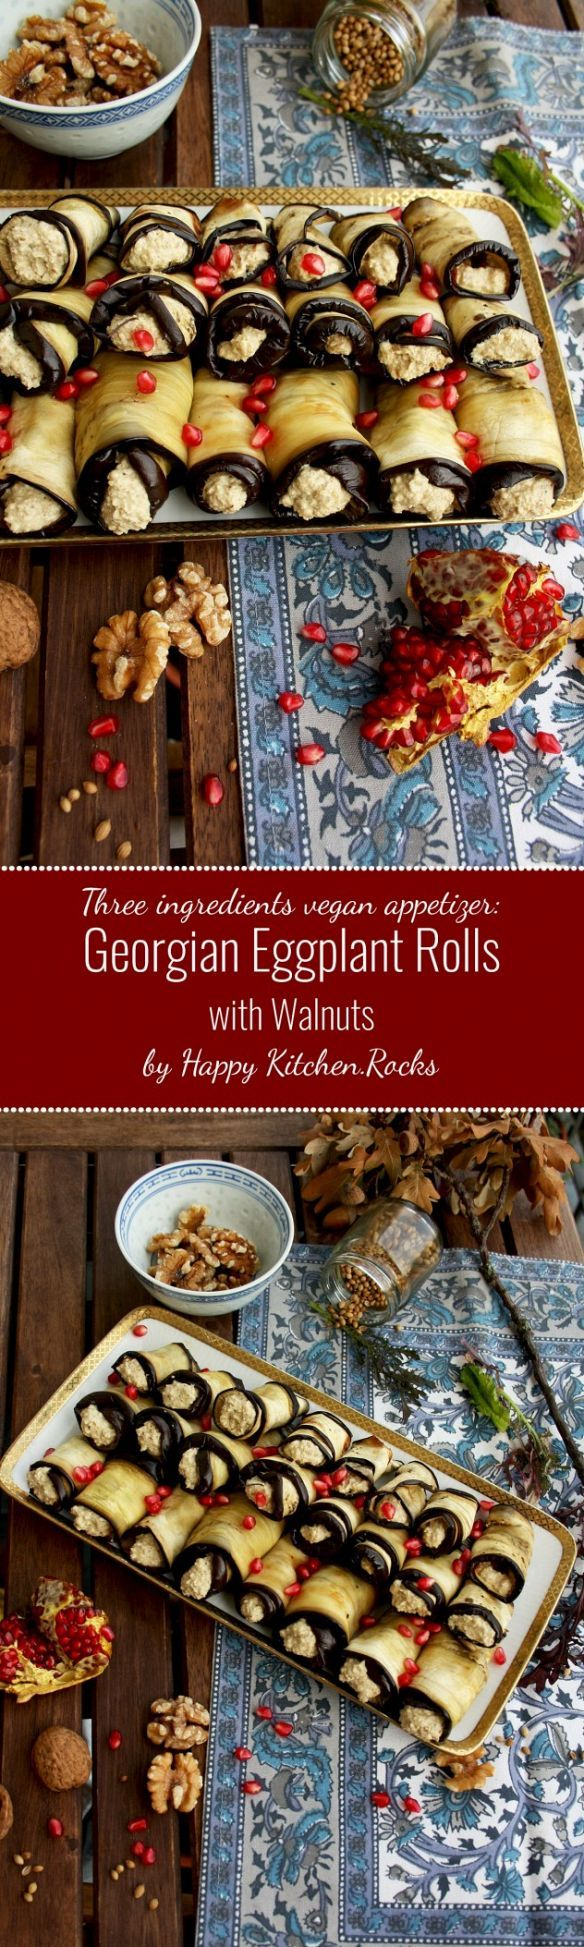 Easy and healthy vegan appetizer: Georgian Eggplant Rolls with Walnut Filling. You only need three ingredients and a bit of spices to make it! Great gluten-free appetizer for your Thanksgiving table!